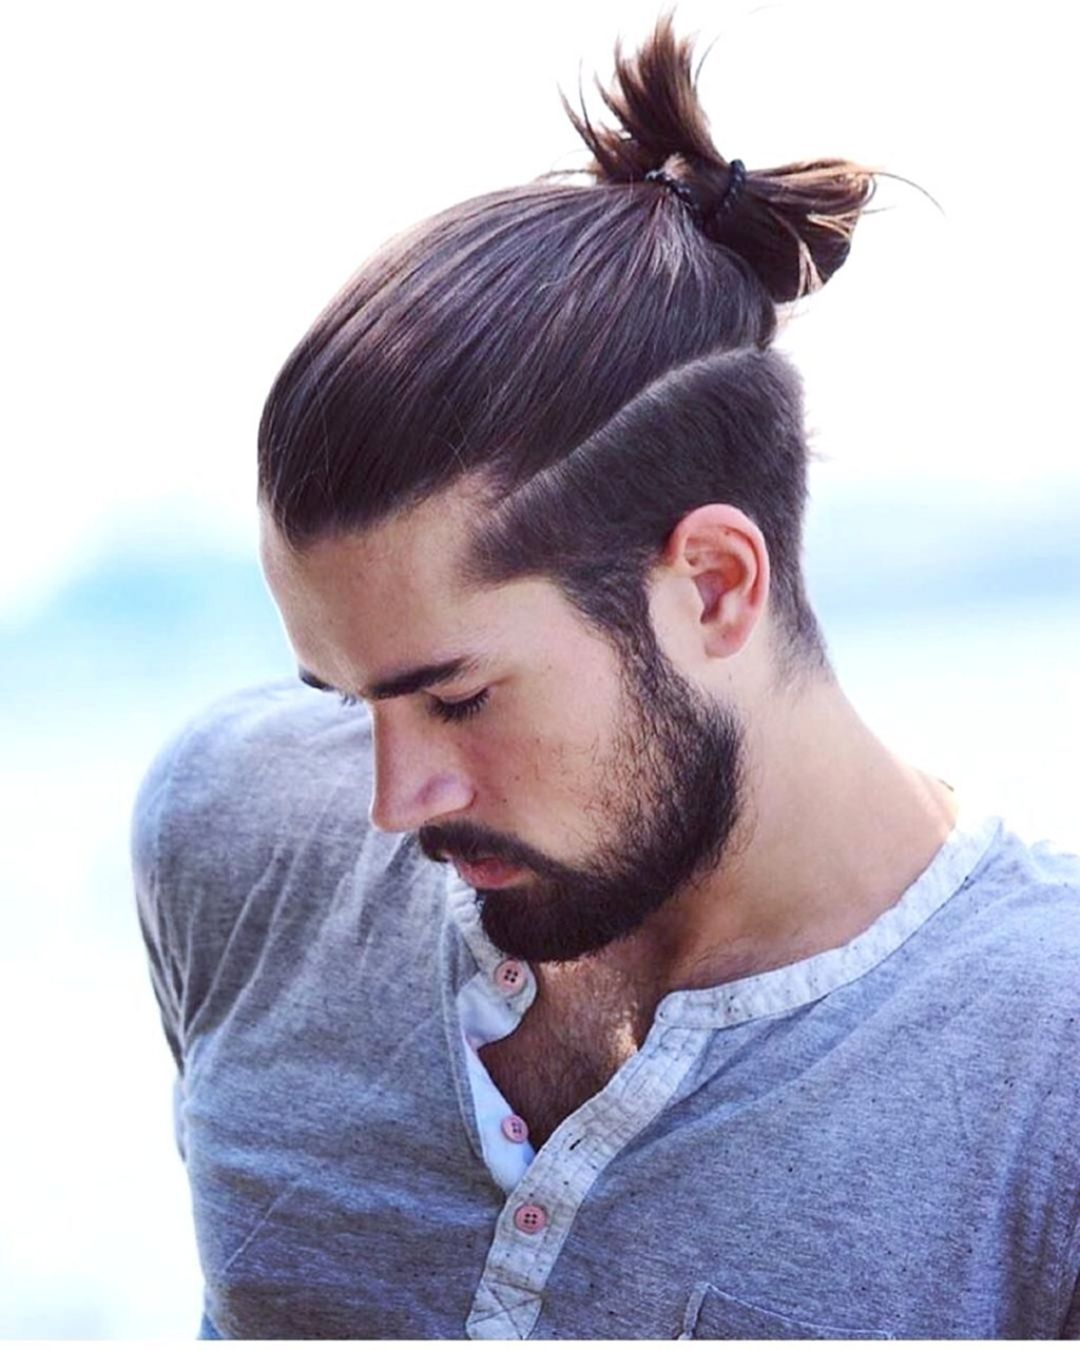 9 Awesome Man Bun Hairstyles That Can Make You Look Cool Fashions Nowadays Man Bun Hairstyles Long Hair Styles Men Man Bun Styles